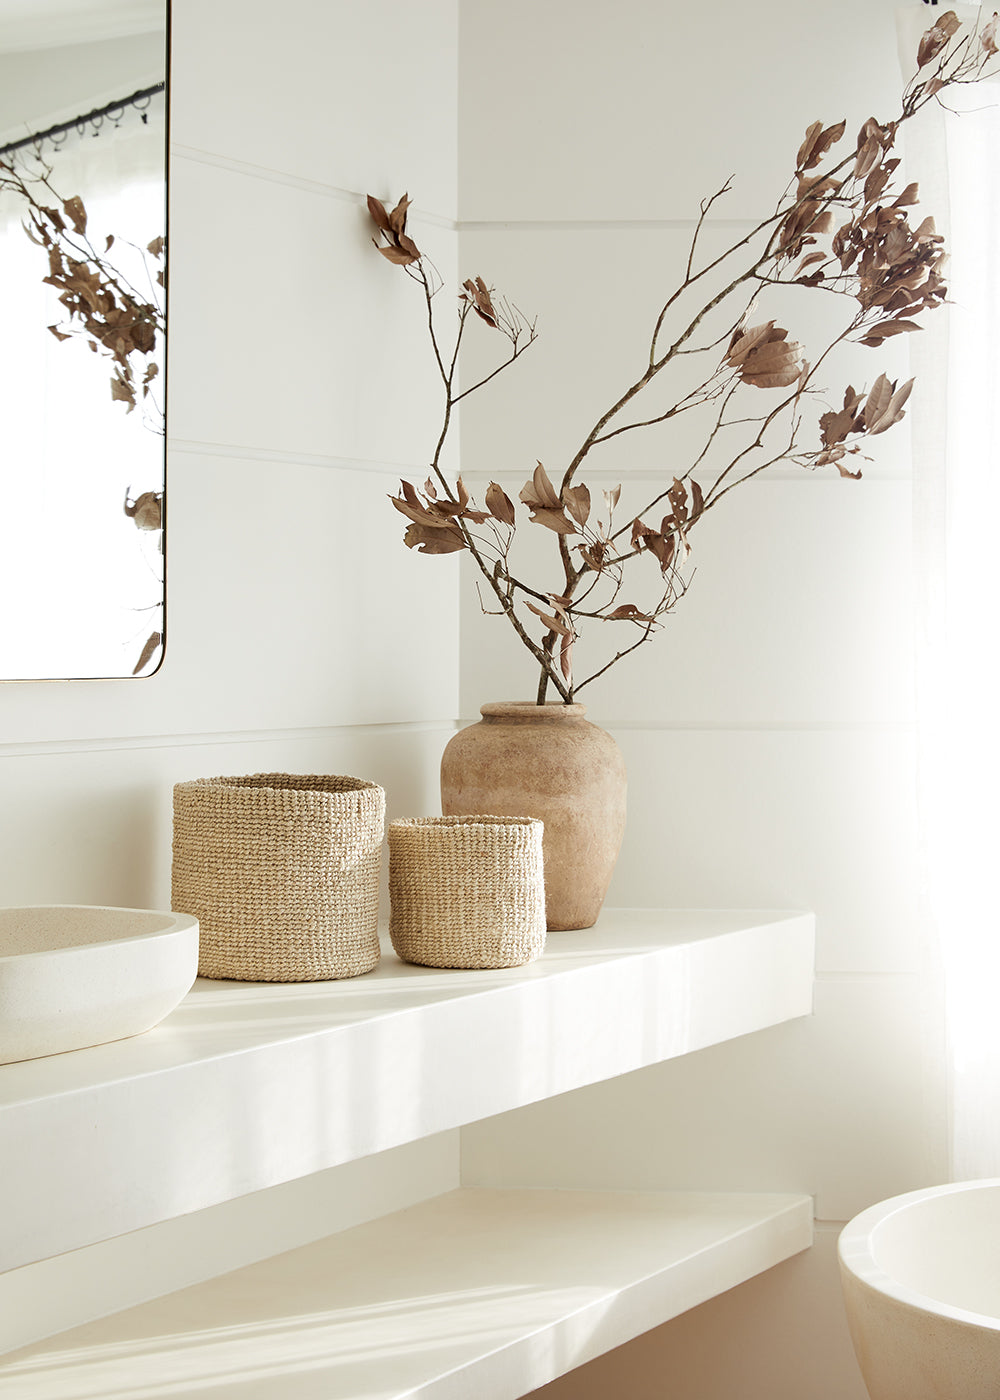 Jute storage baskets used in a bathroom vanity.